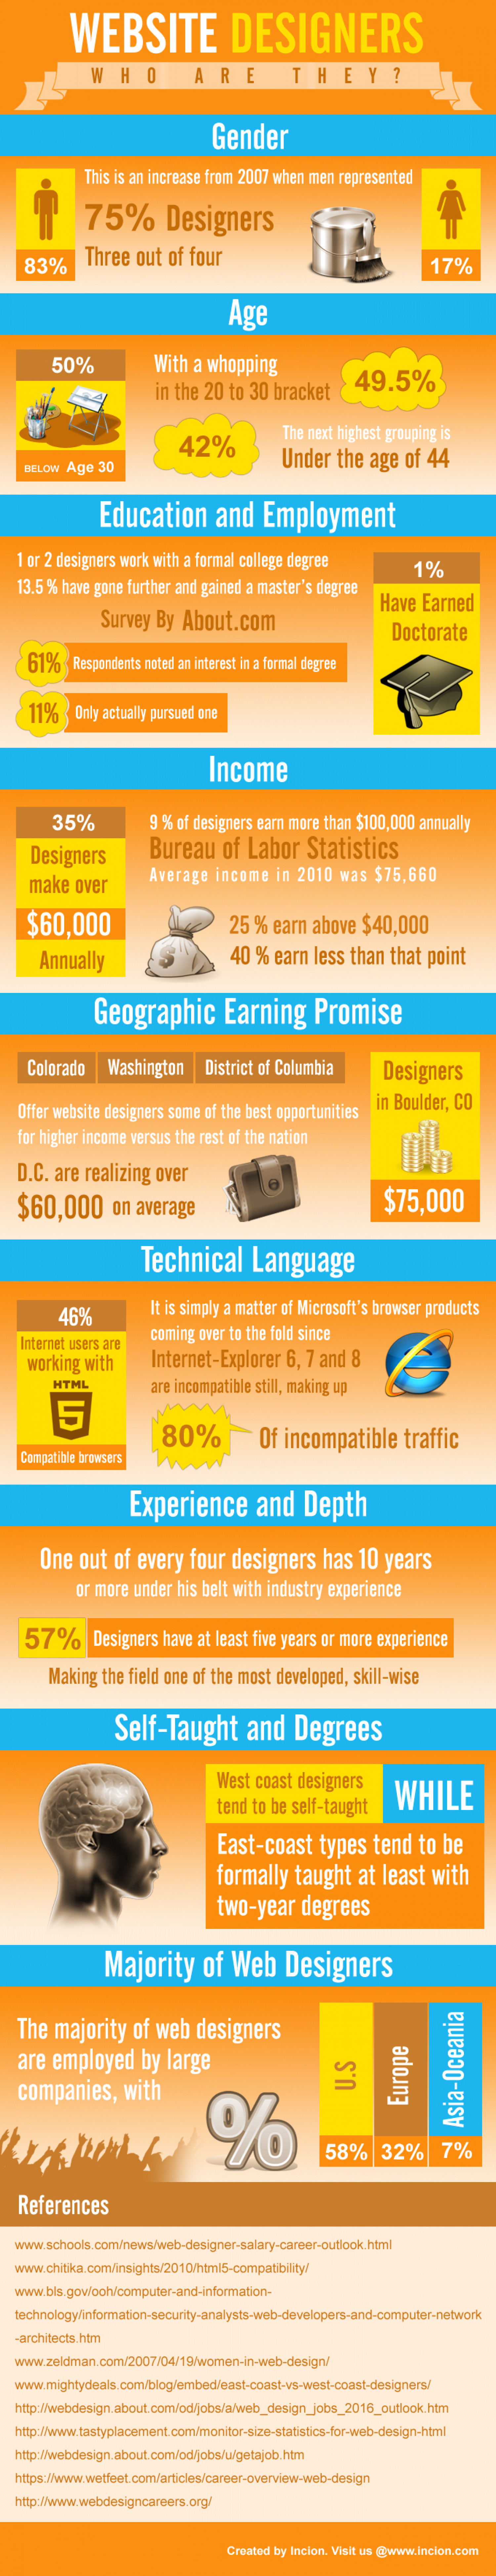 Website Designers who are they? Infographic